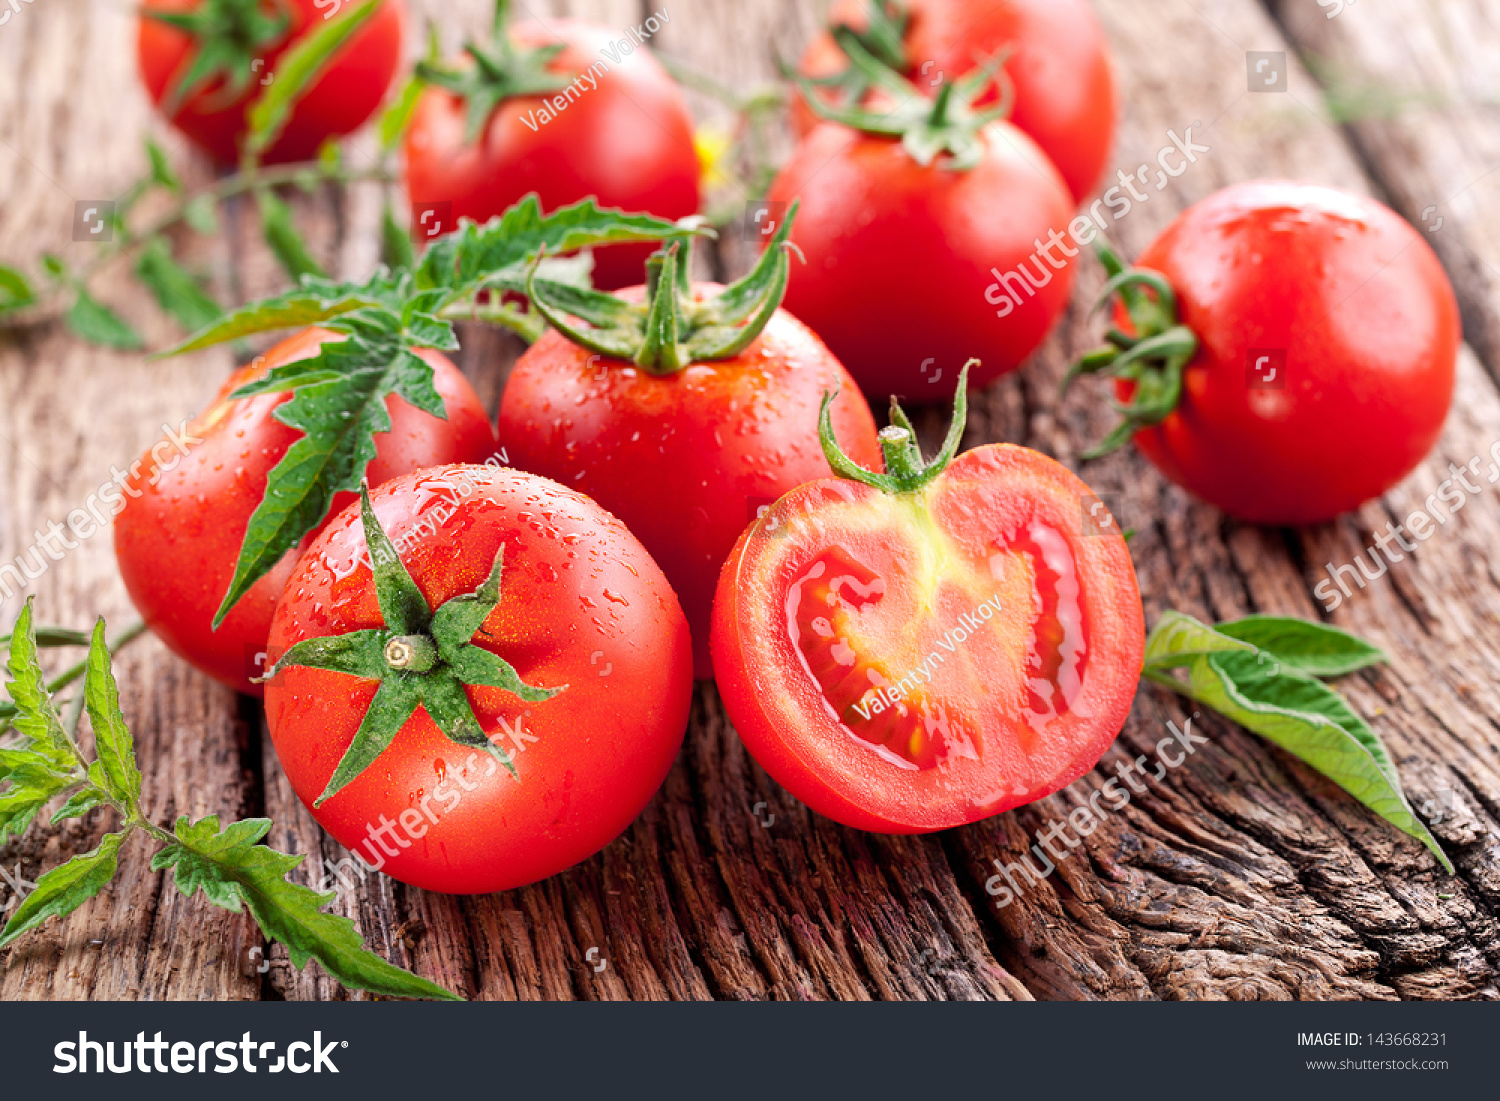 http://image.shutterstock.com/z/stock-photo-tomatoes-cooked-with-herbs-for-the-preservation-on-the-old-wooden-table-143668231.jpg